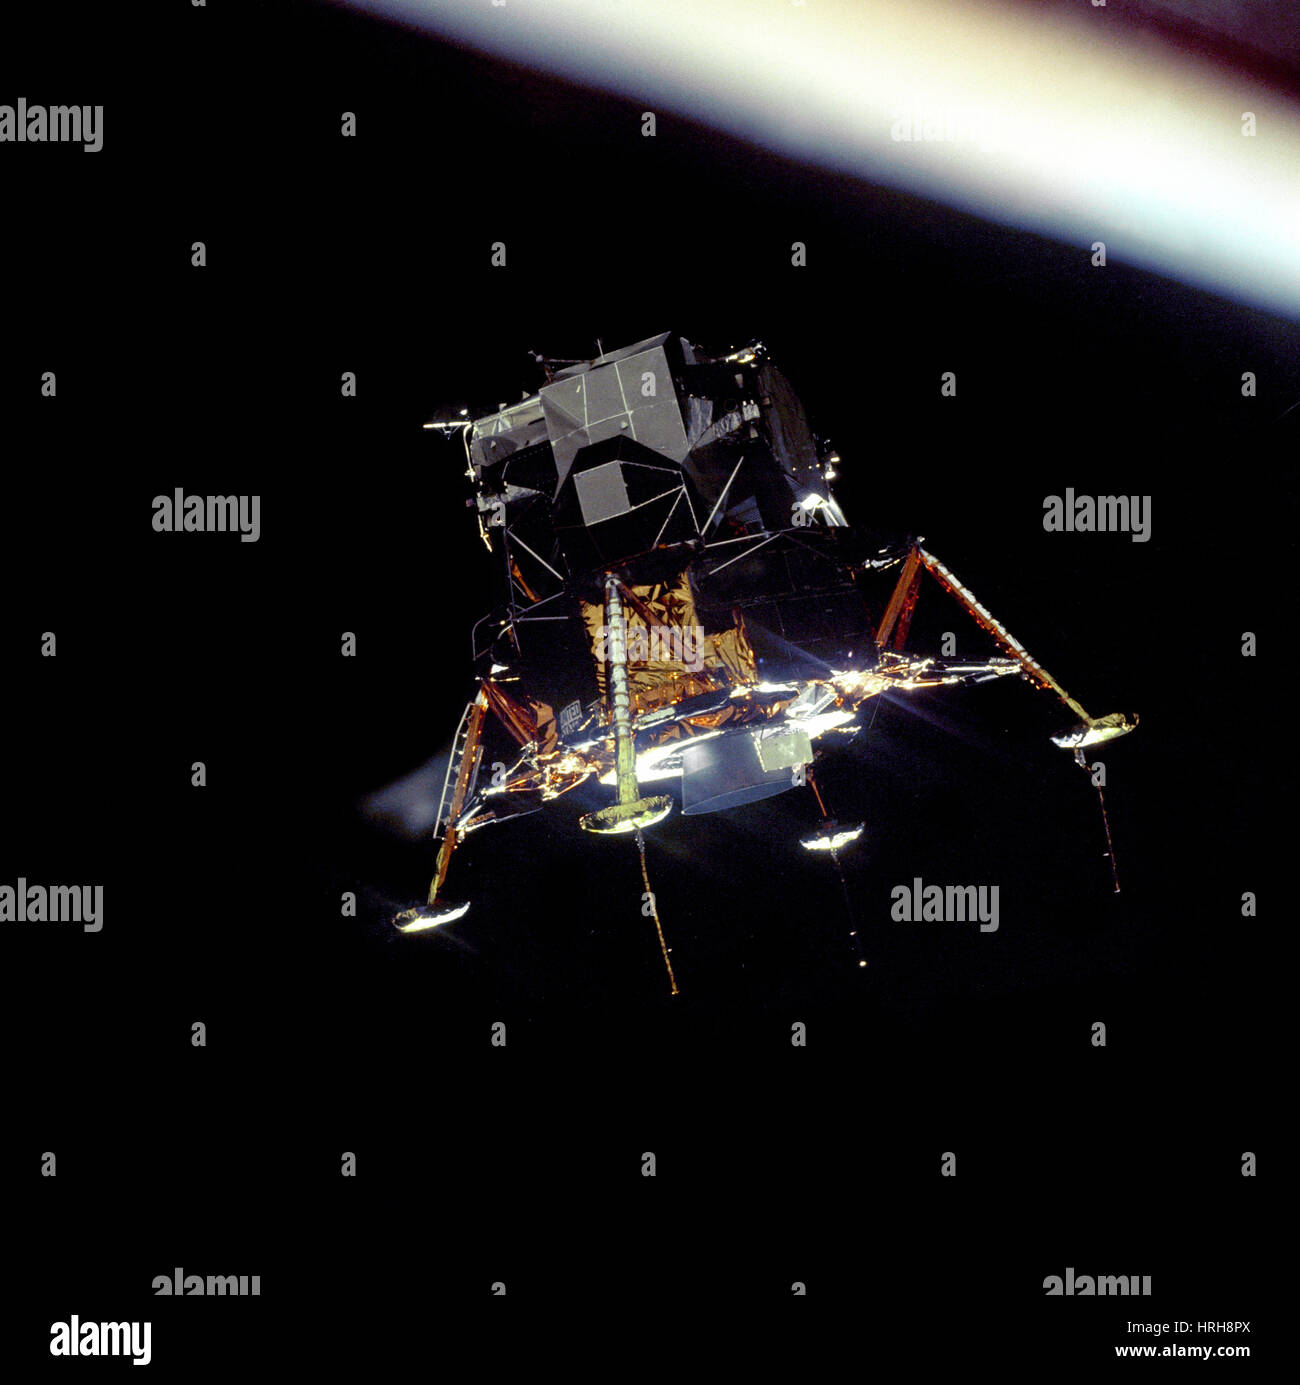 Apollo 11 Lunar Module 'Eagle' - Stock Image